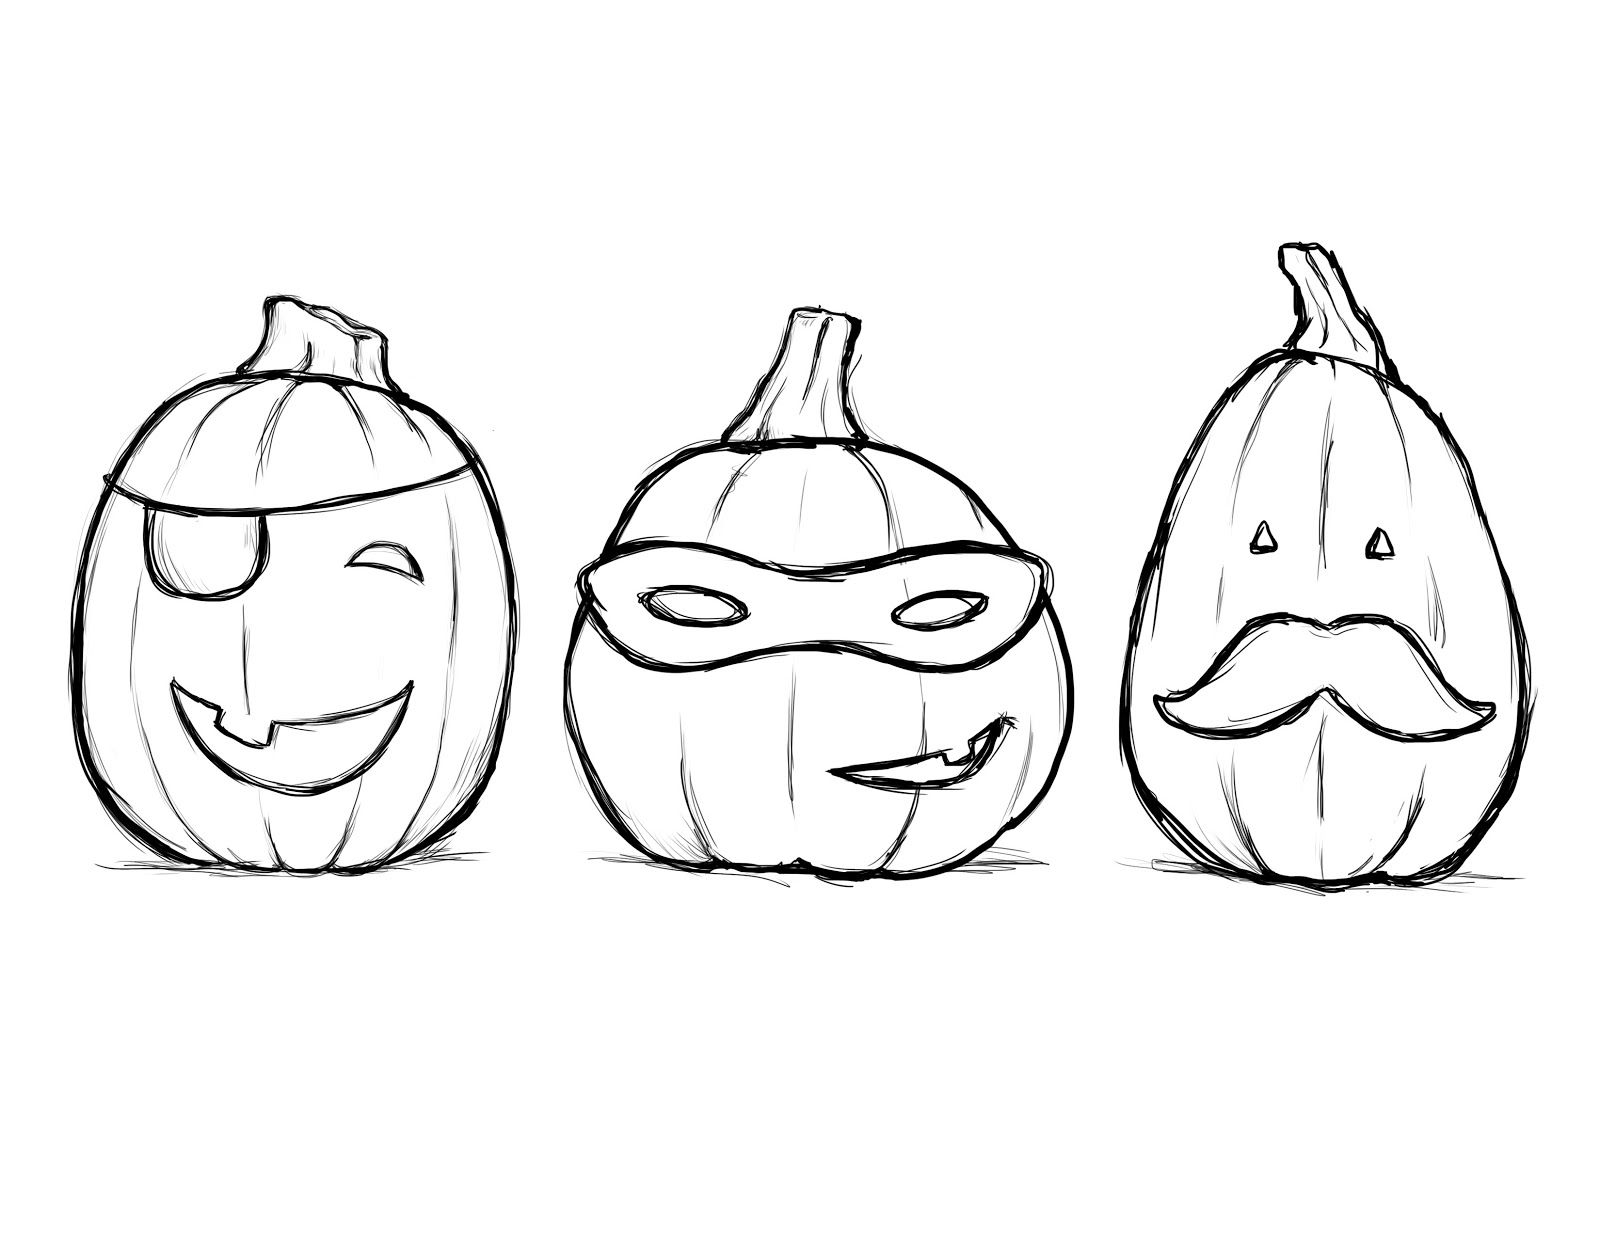 coloring pages of pumpkins free printable pumpkin coloring pages for kids cool2bkids of pages pumpkins coloring